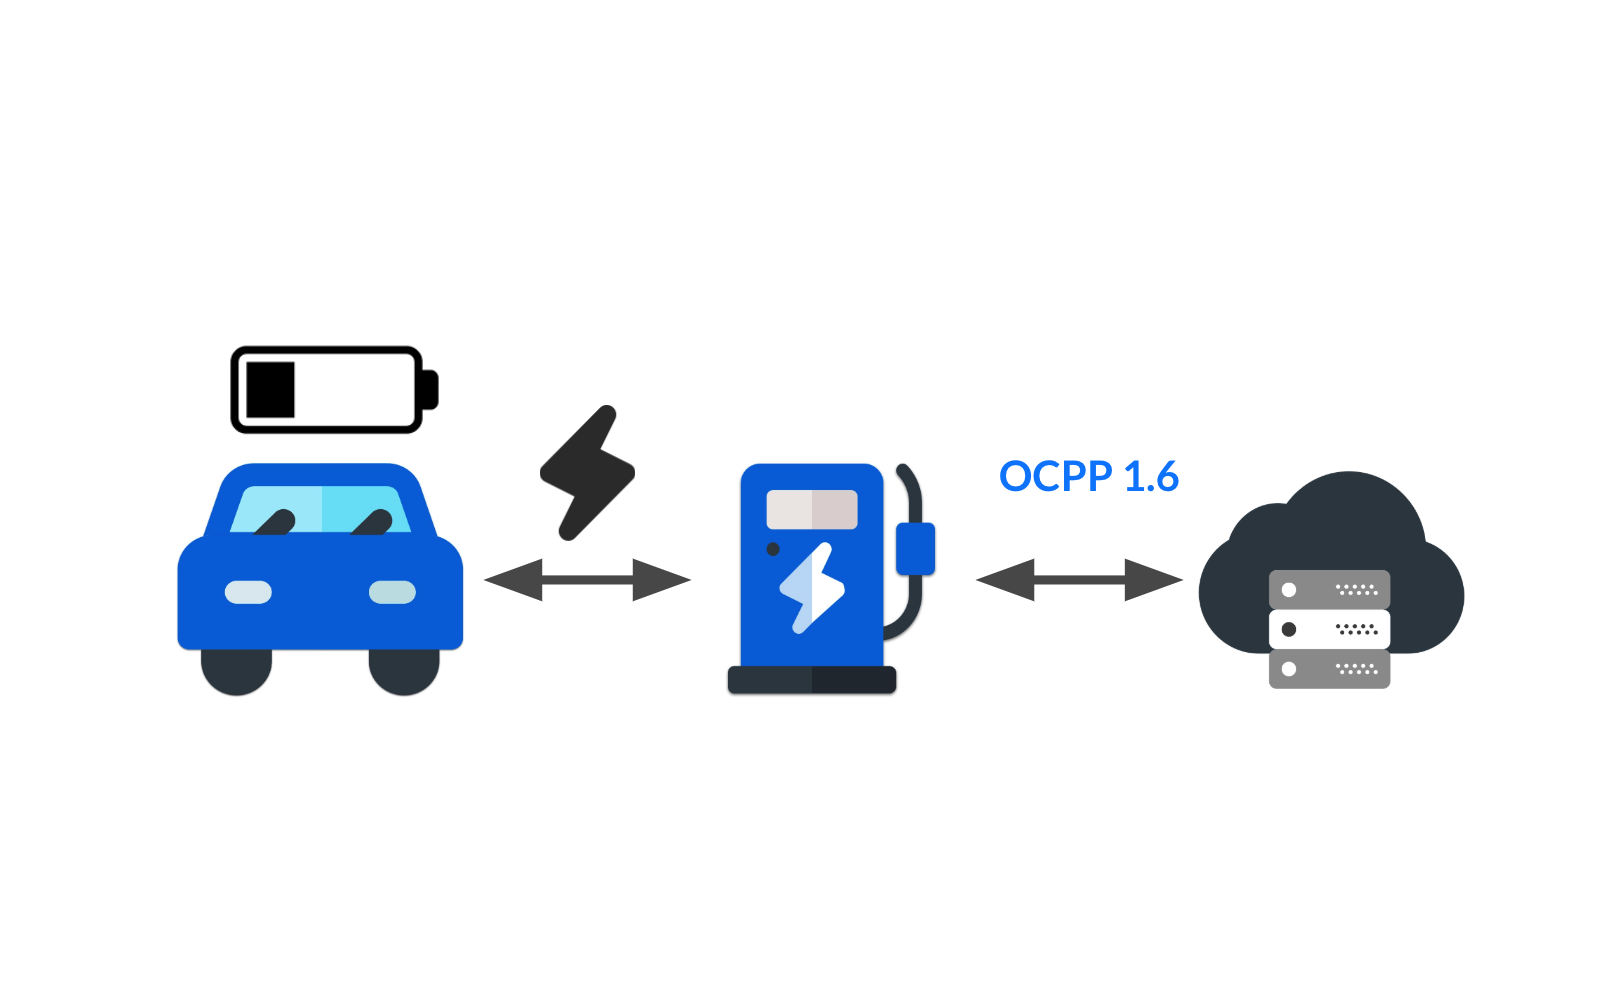 How to implement smart charging with OCPP 1.6?